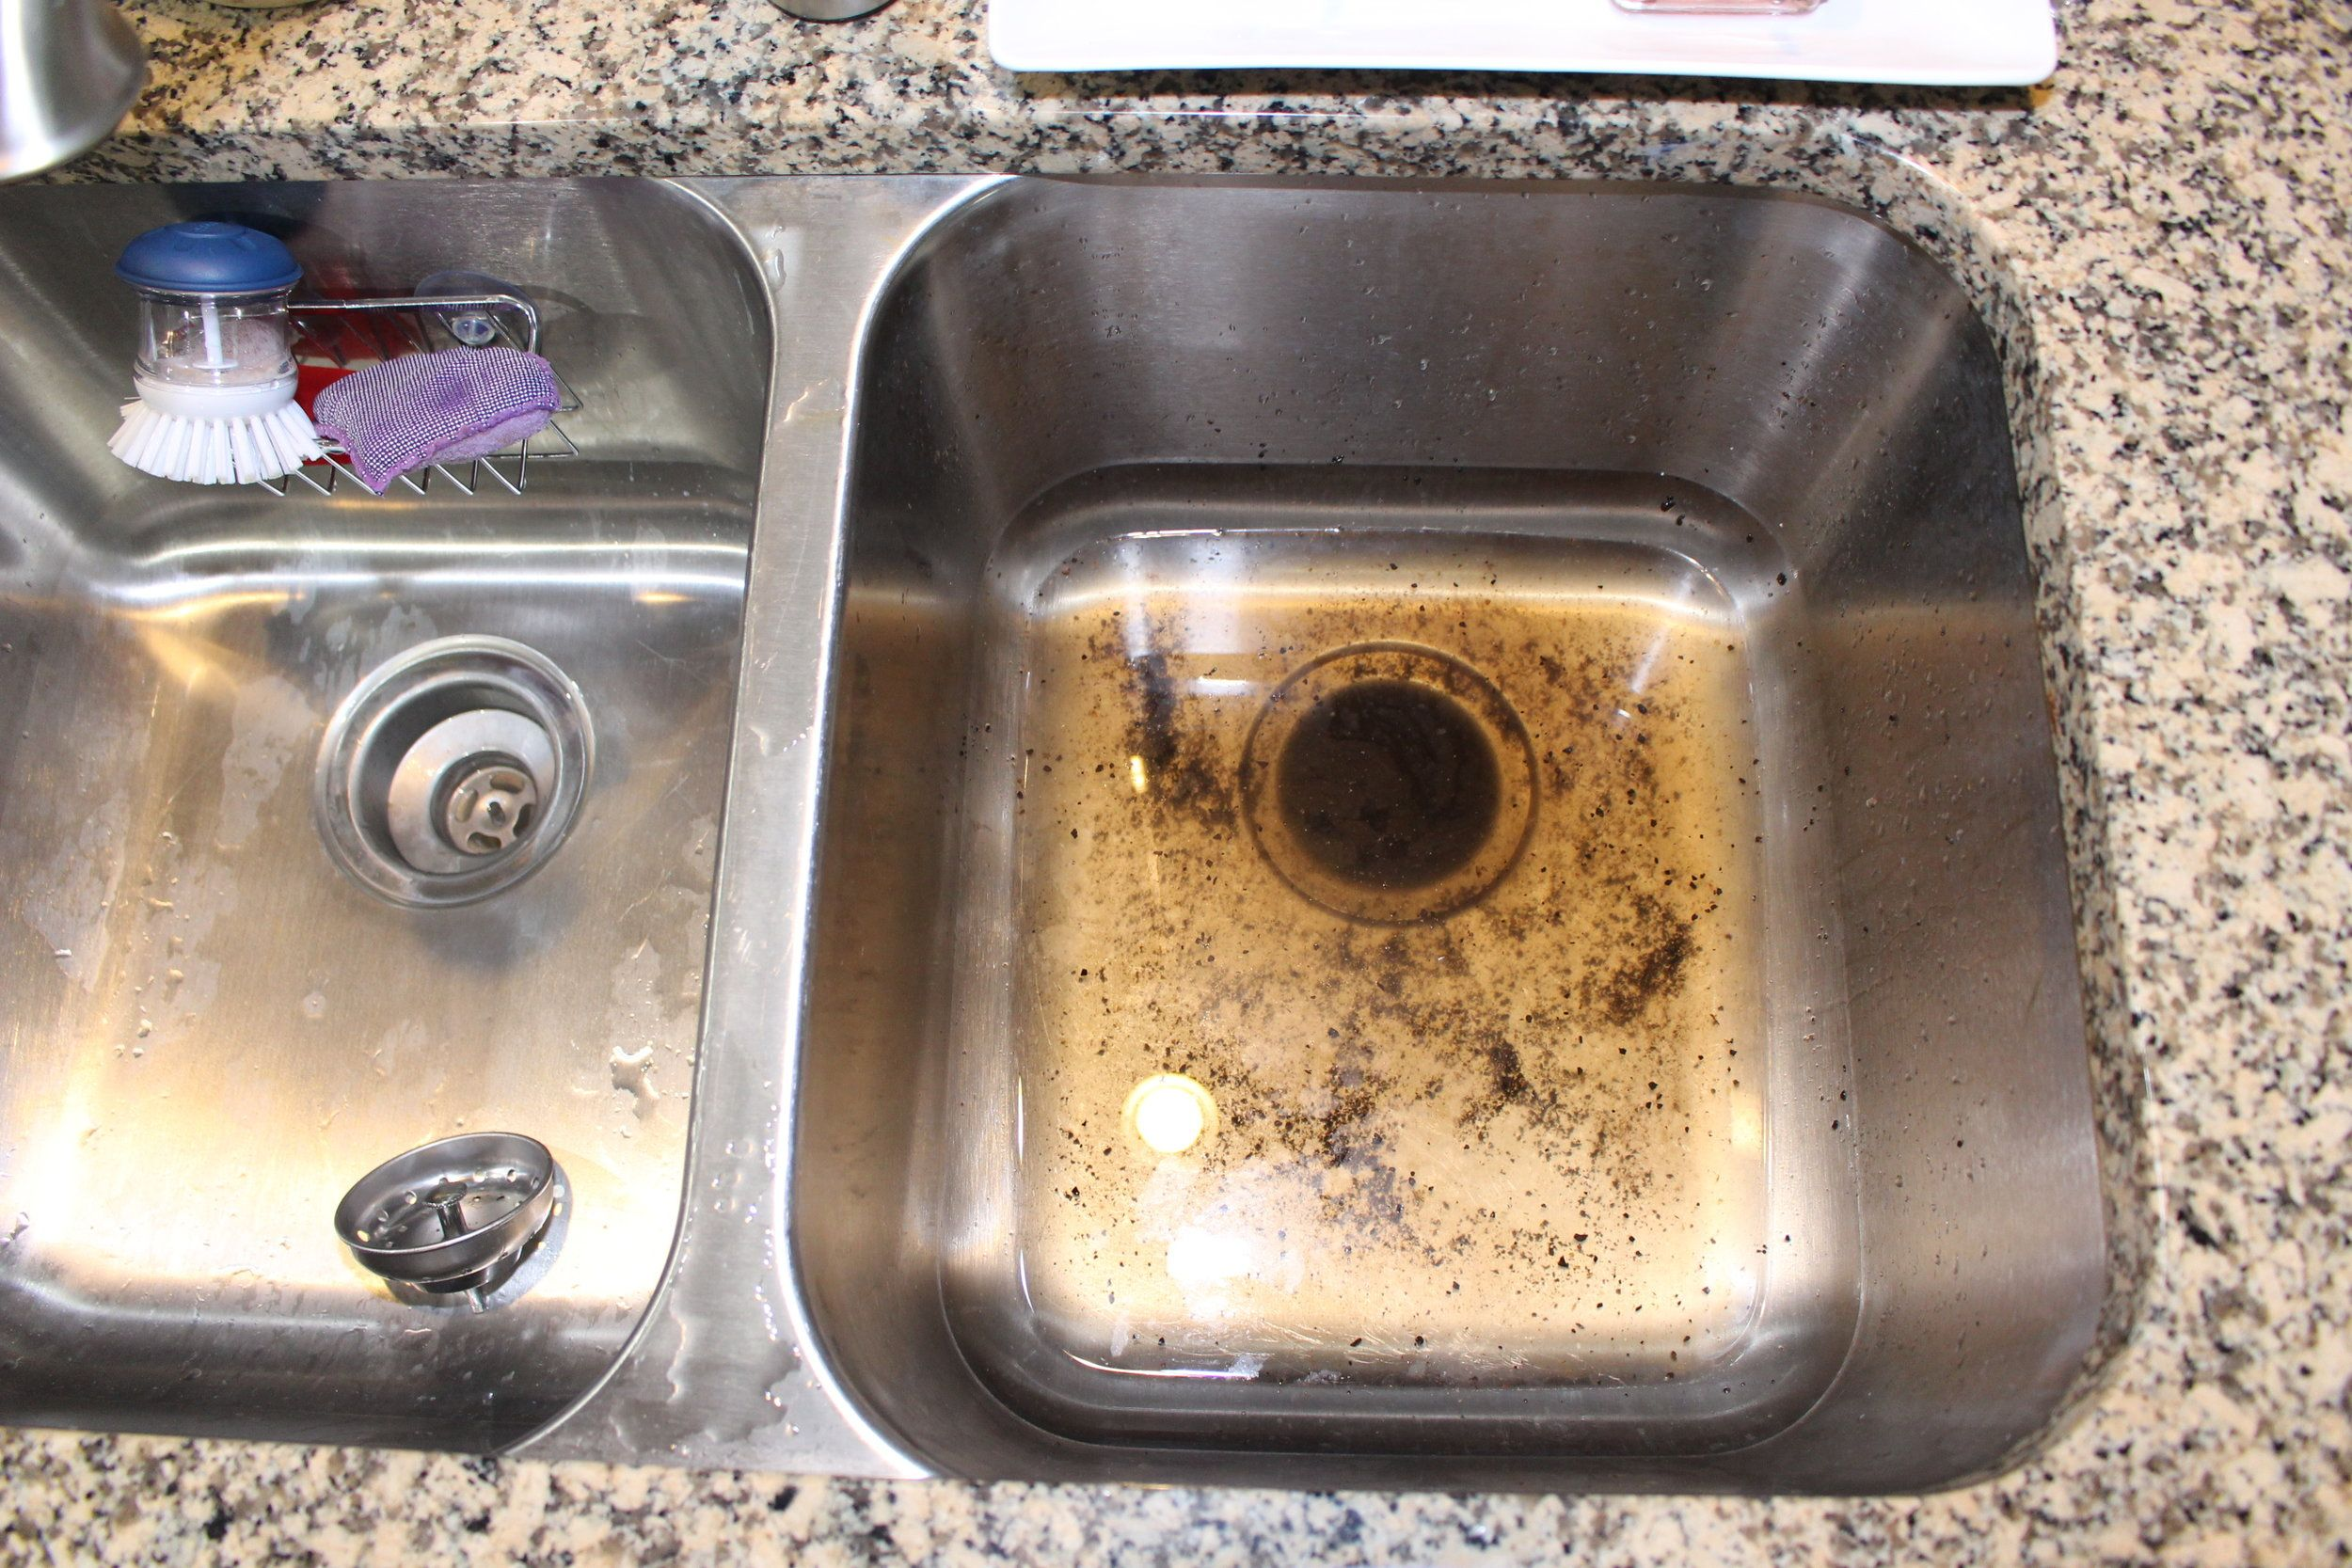 How To, Garbage Disposal, Unclog, Unclogging, Kitchen, Sink, Kitchen Sink